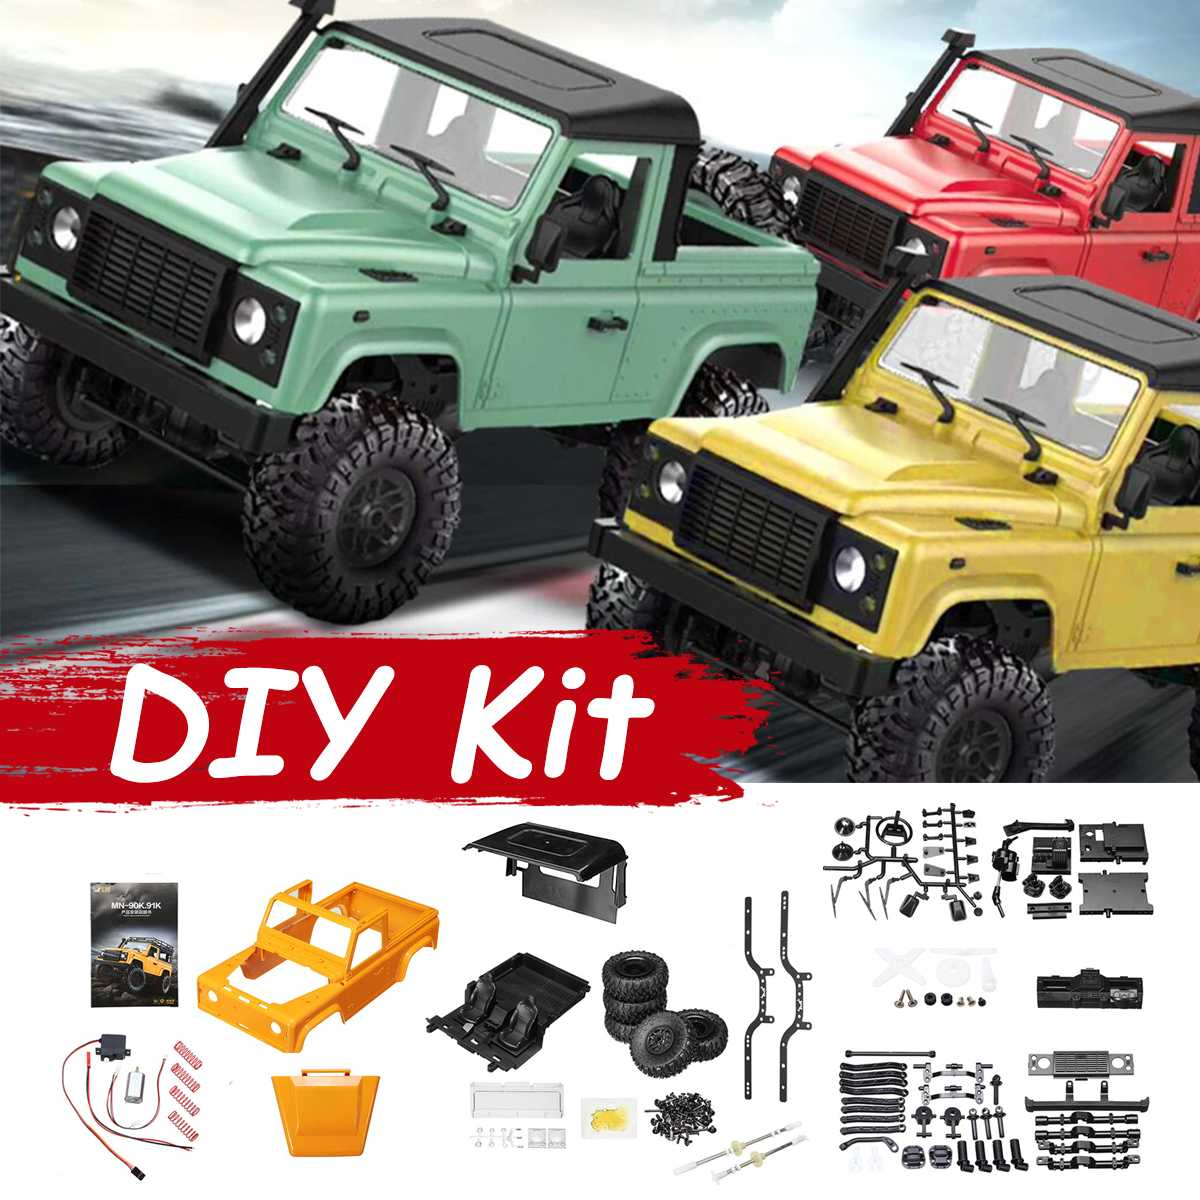 Military Truck D90 1/12 2.4G 4WD RC Car DIY Kit Off-road Buggy Kids Remote Toy Model Colors Plastic Metal Crawler Parts CrawlerMilitary Truck D90 1/12 2.4G 4WD RC Car DIY Kit Off-road Buggy Kids Remote Toy Model Colors Plastic Metal Crawler Parts Crawler